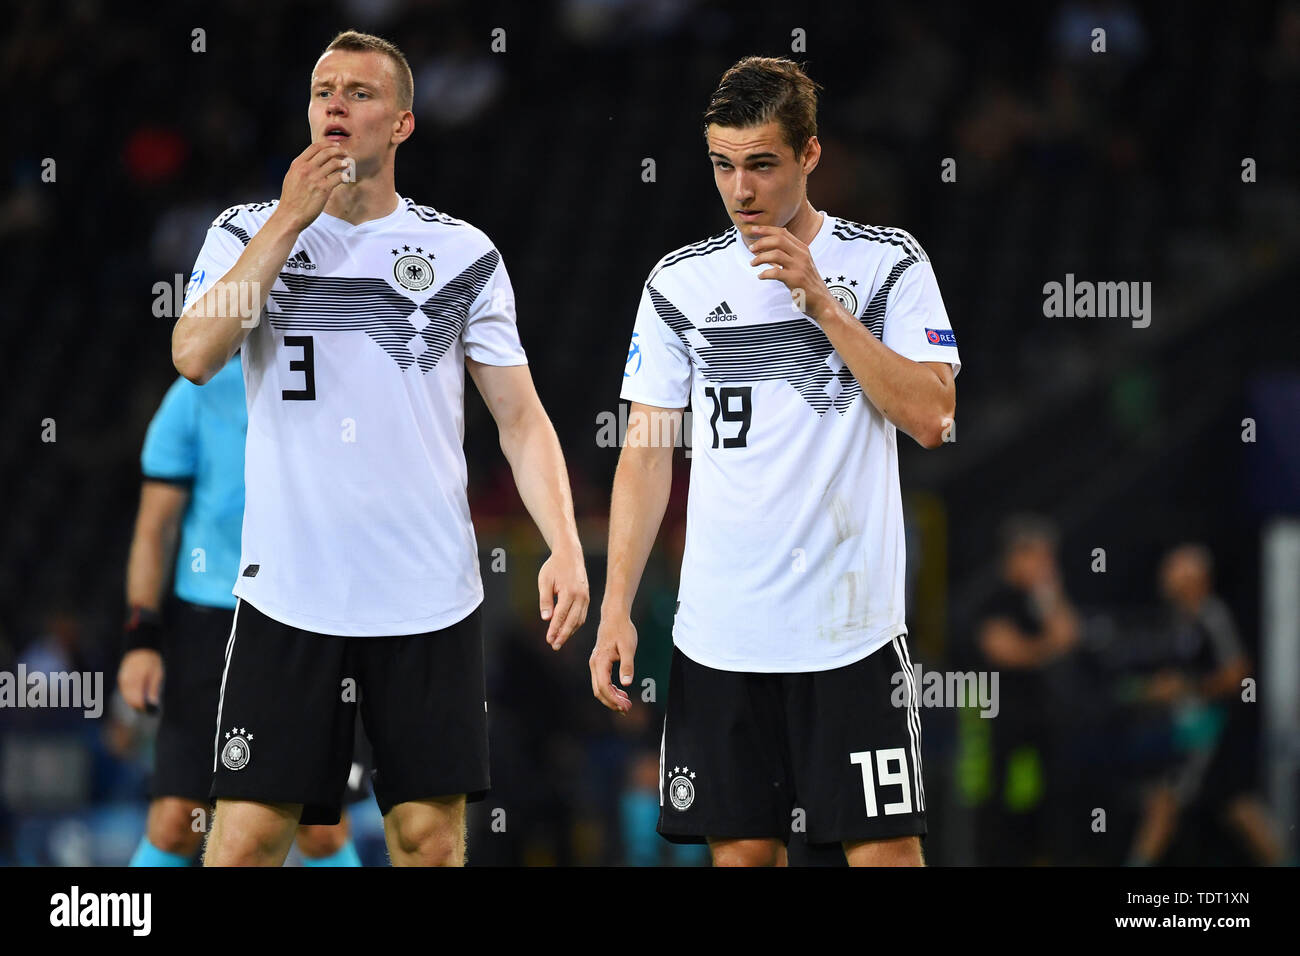 LUKAS KLOSTERMANN (GER), Florian NEUHAUS (GER). gesture, skeptical action. Germany (GER) -Daenemark (DEN) 3-1, on 17.06.2019 Stadio Friuli Udine. Football U-21, UEFA Under21 European Championship in Italy / SanMarino from 16.-30.06.2019. | Usage worldwide - Stock Image